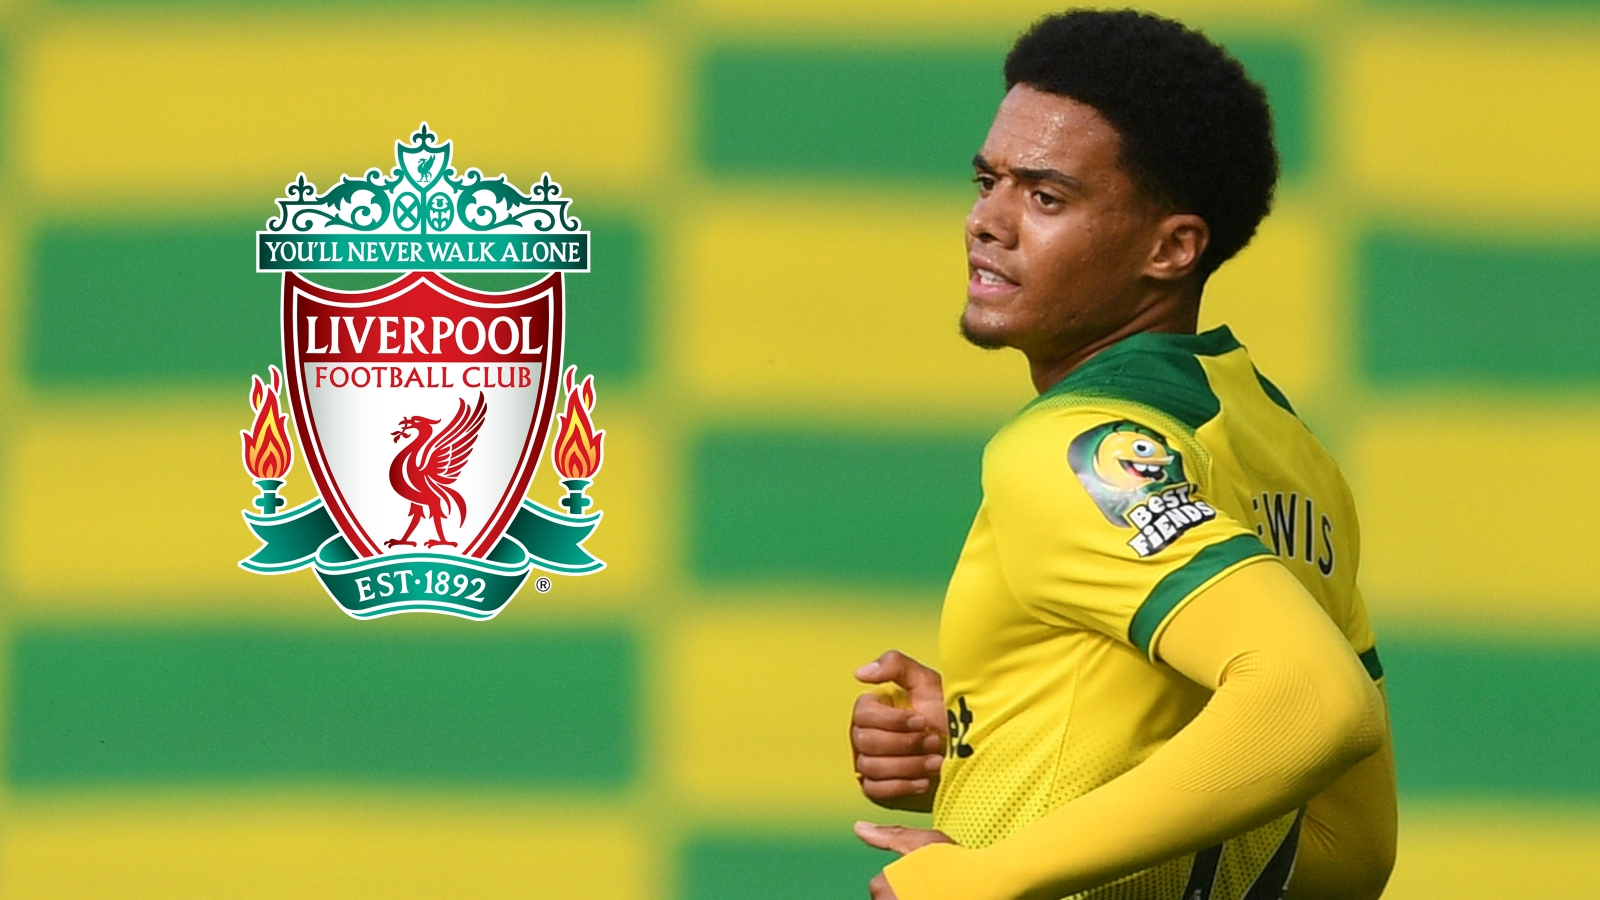 'Lewis has all the attributes for Liverpool' – Baraclough urges Norwich star to snap up Anfield opportunity